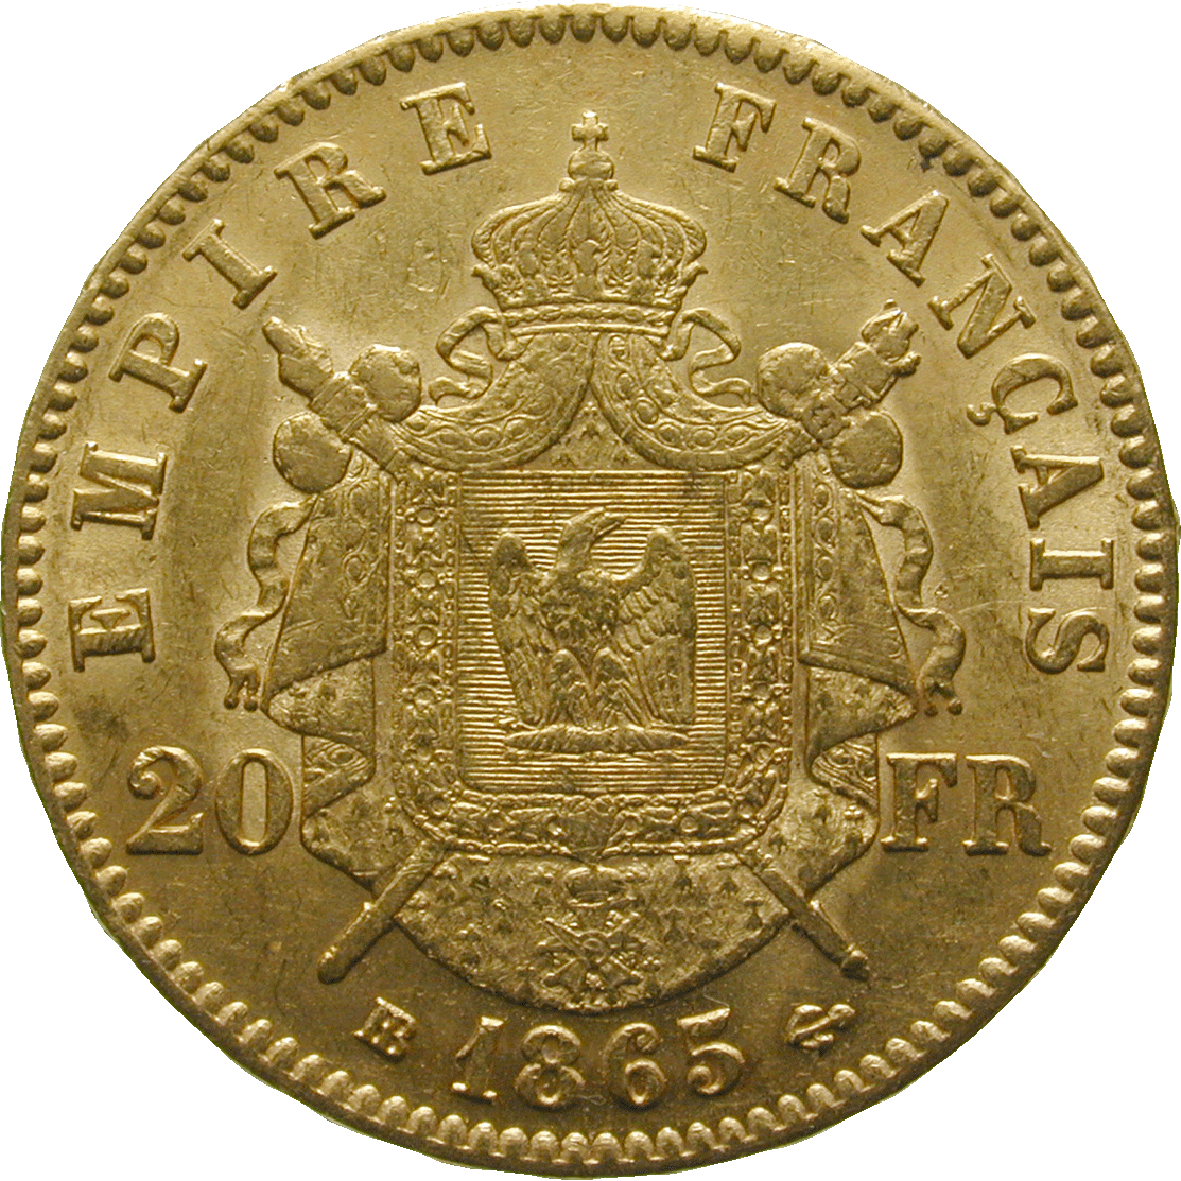 French Empire, Napoleon III, 20 Francs 1865 (reverse)